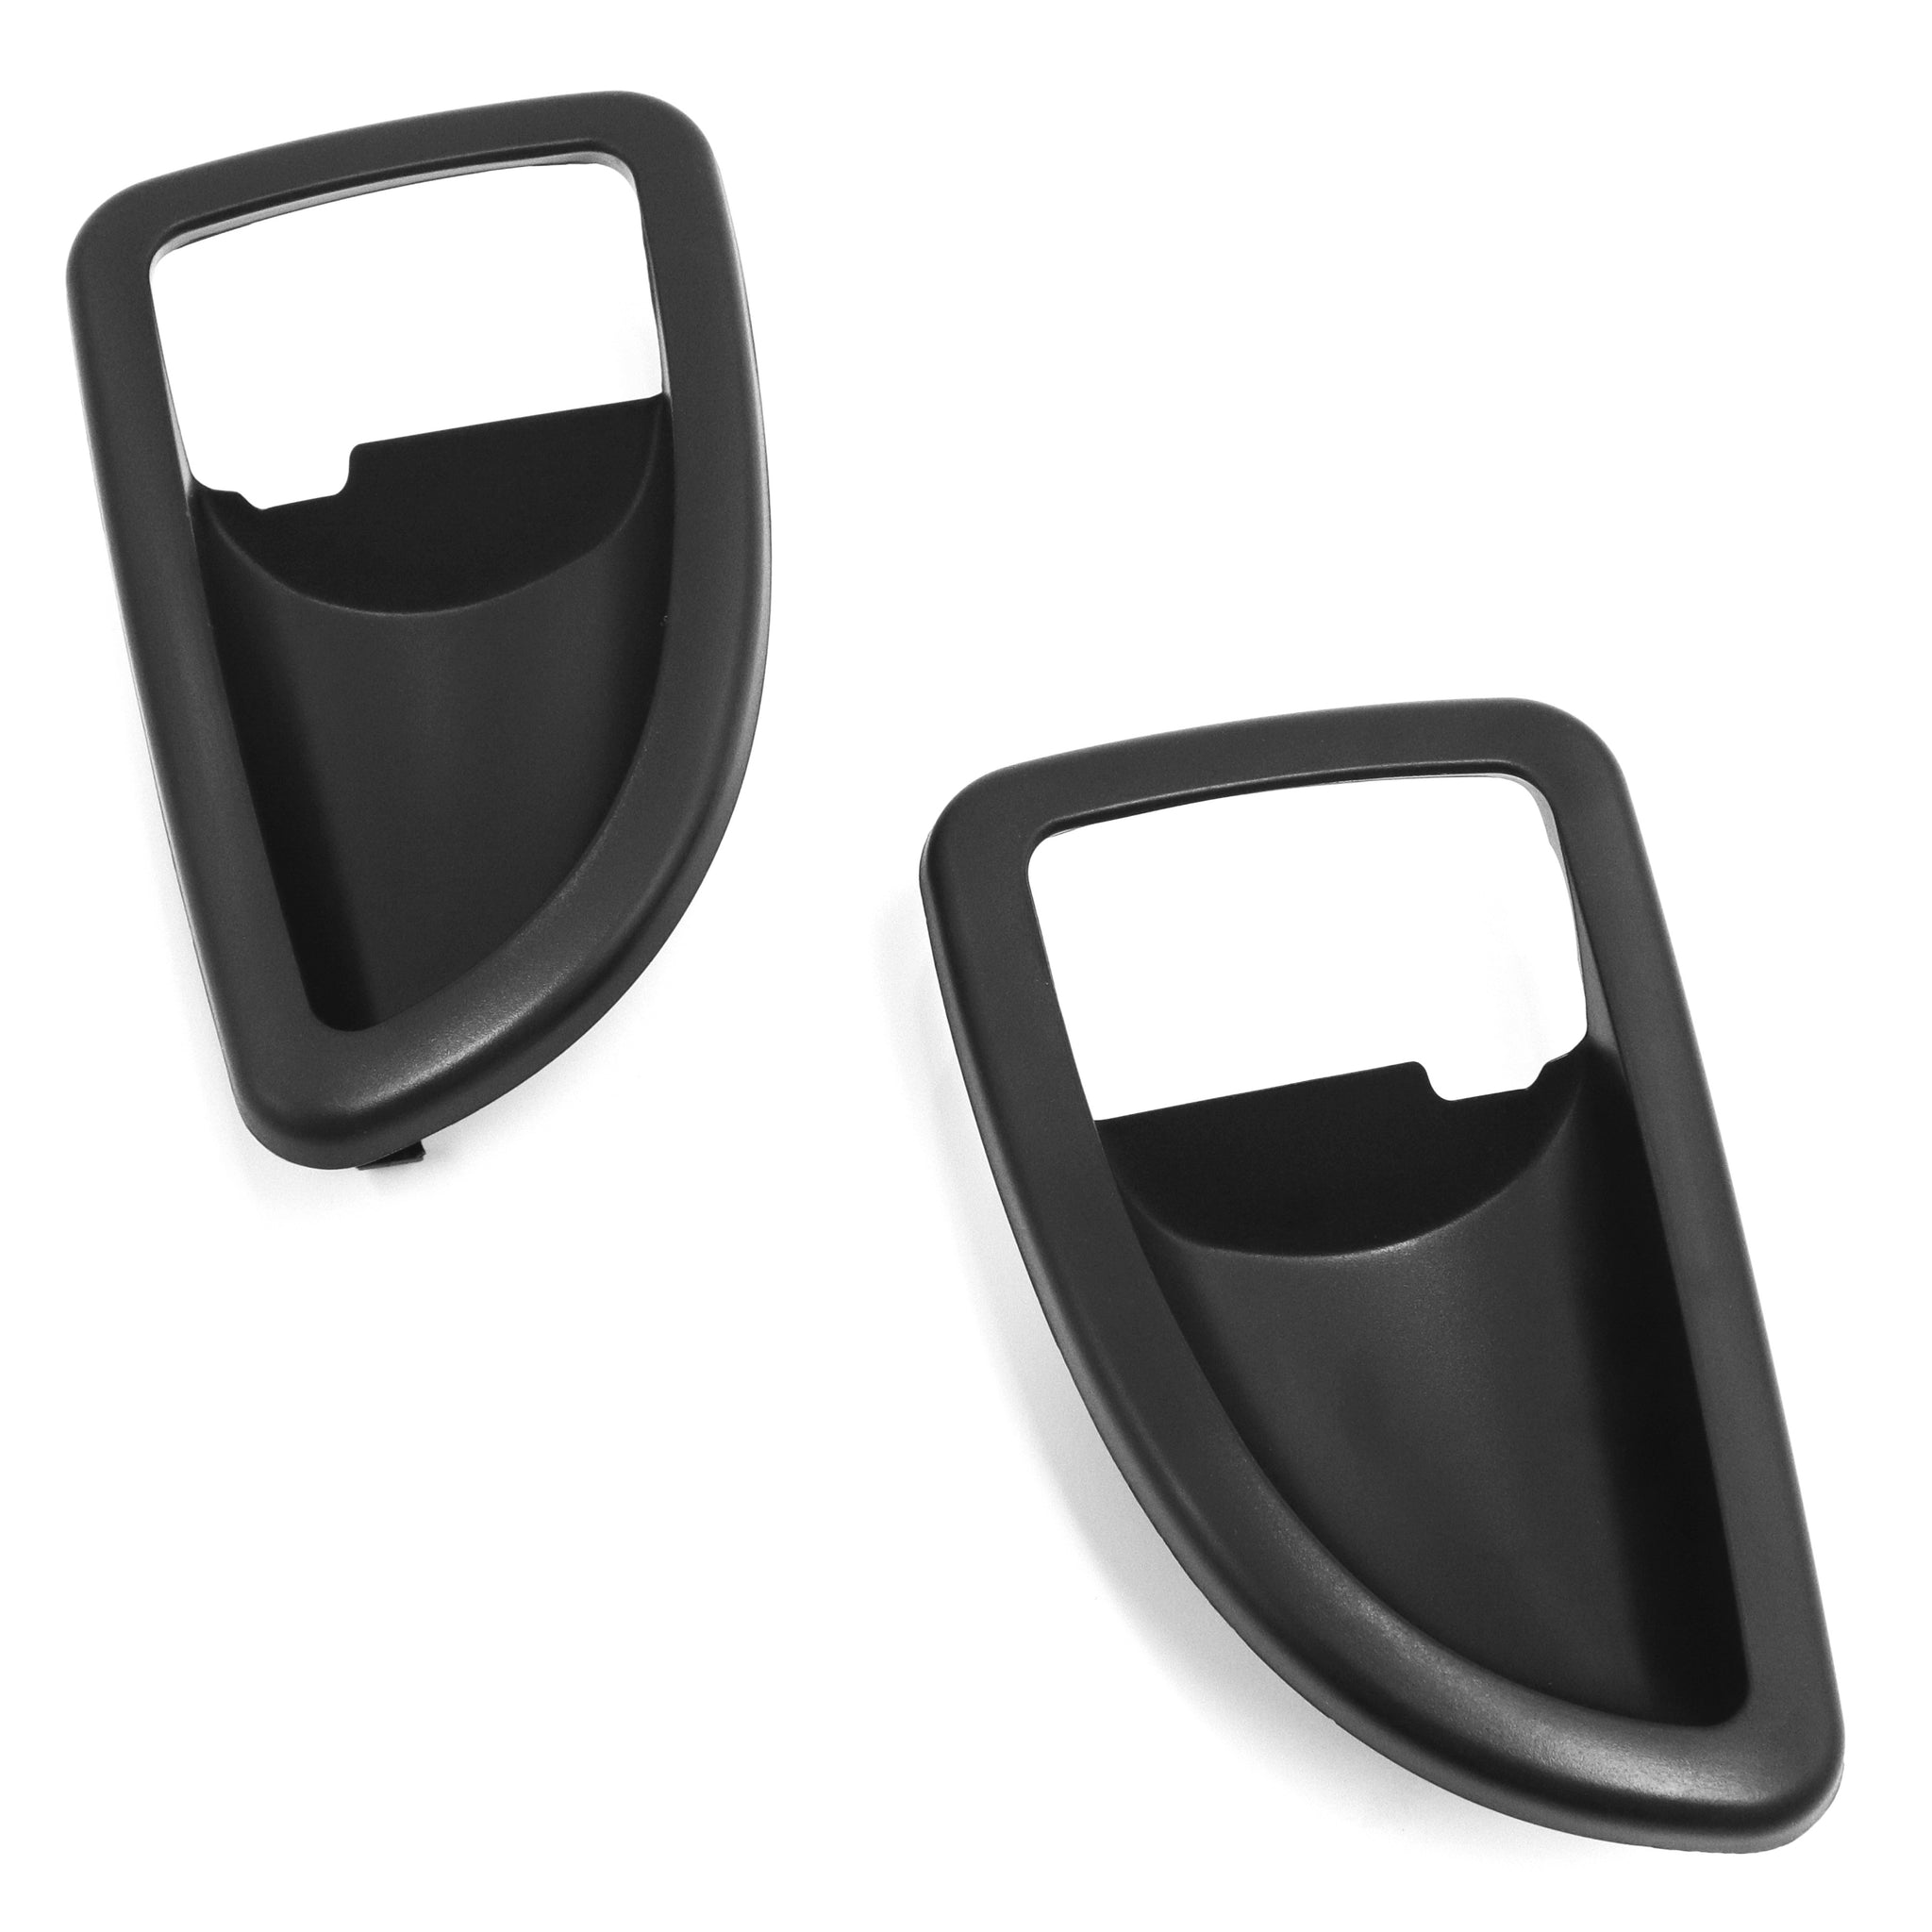 Red Hound Auto 2 Front Driver and Passenger Side Inside Black Door Handle Trim Compatible with Chevrolet Buick Pontiac 2005-2009 Uplander, Montana SV6 and 2005-2007 Terraza